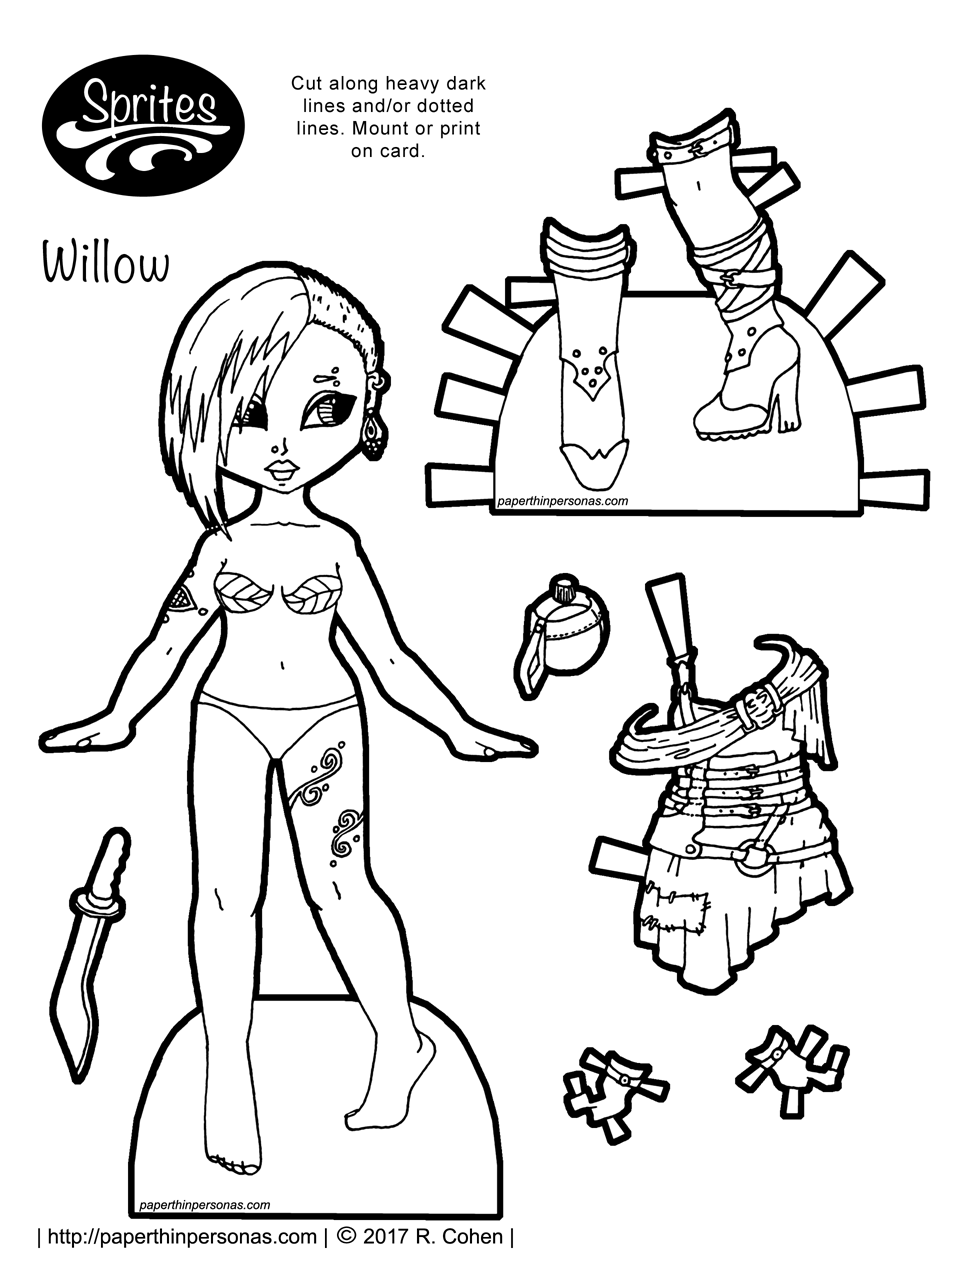 A post-apocalyptic fashion printable paper doll with a dress, boots and tattoos. Free to print, color, and play with from paperthinpersonas.com.